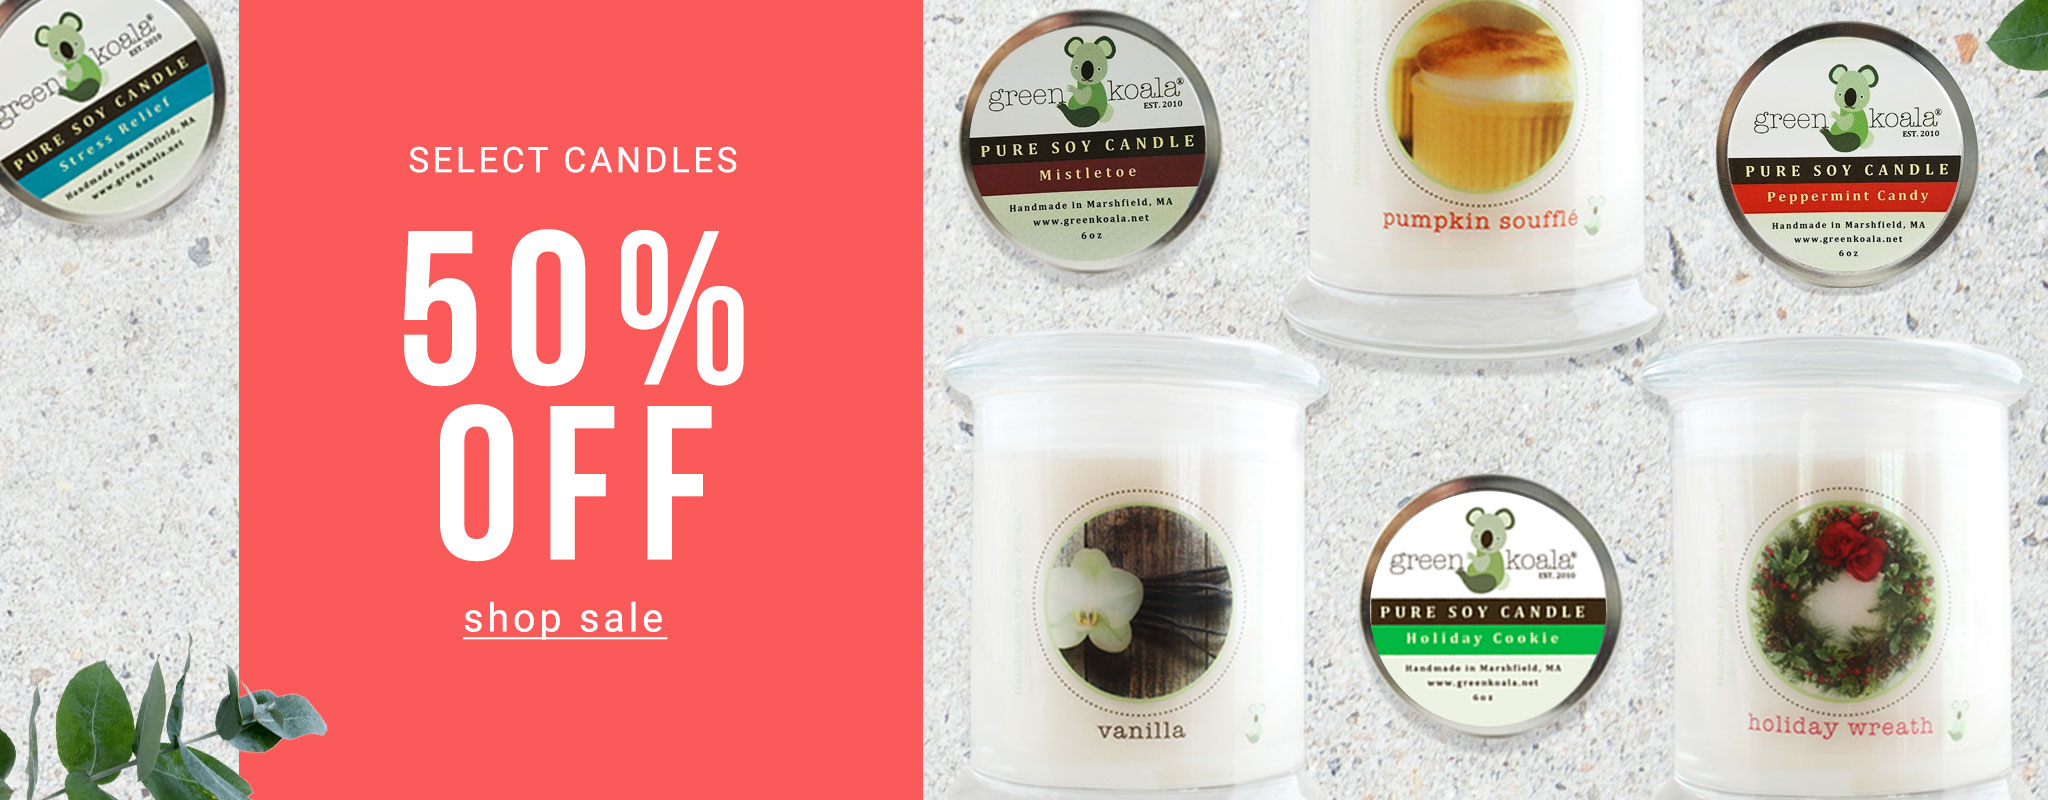 50% Off Select Candles